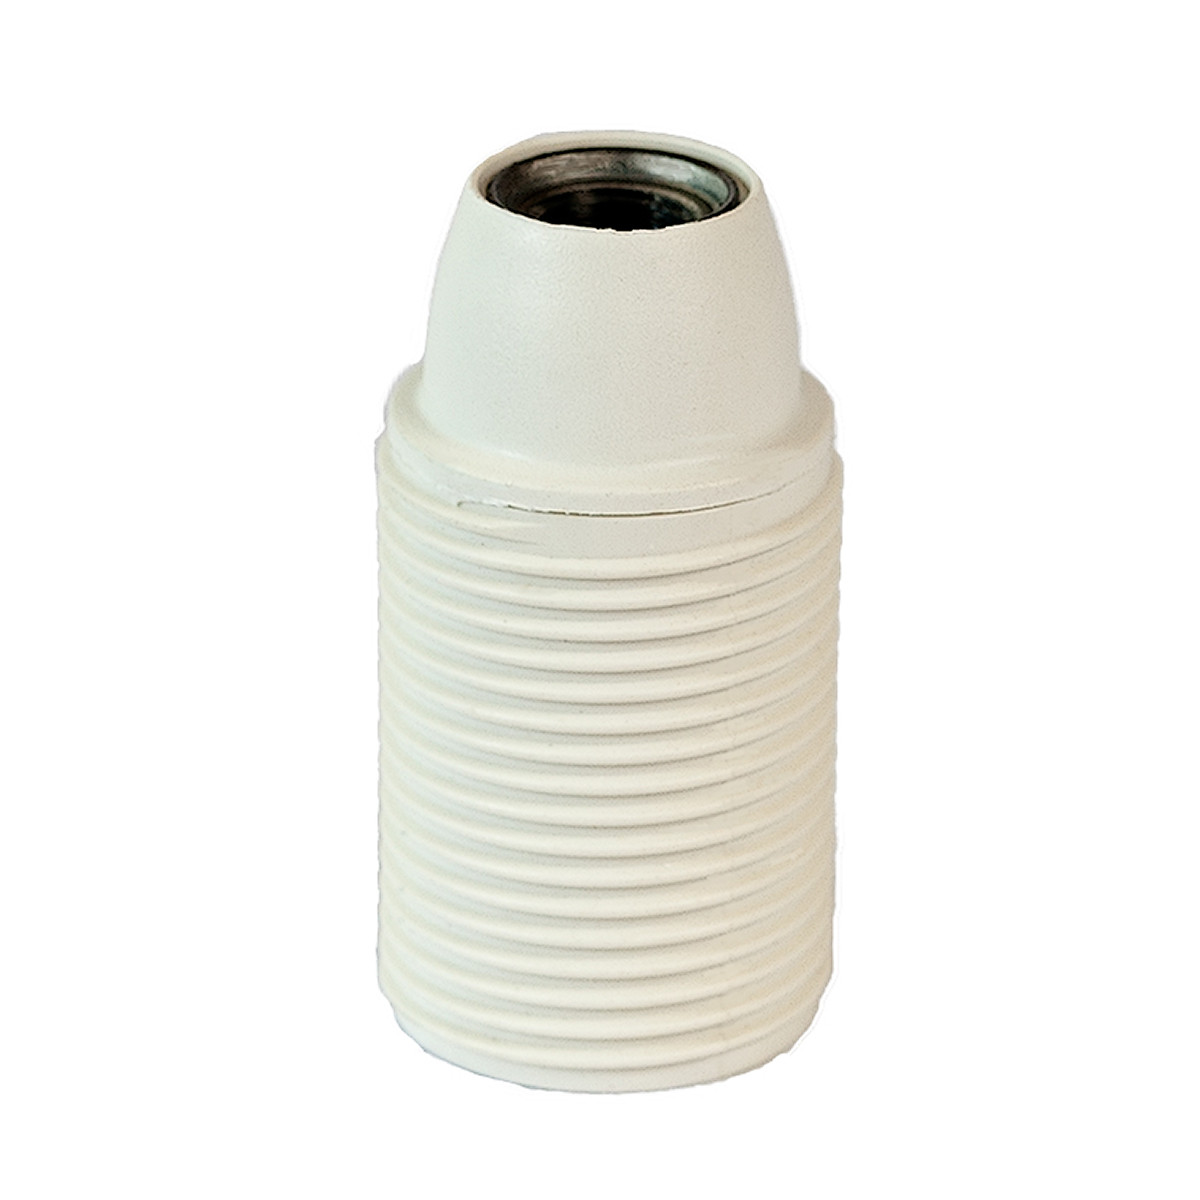 Plastic Lamp Holder E14 With External Thread White